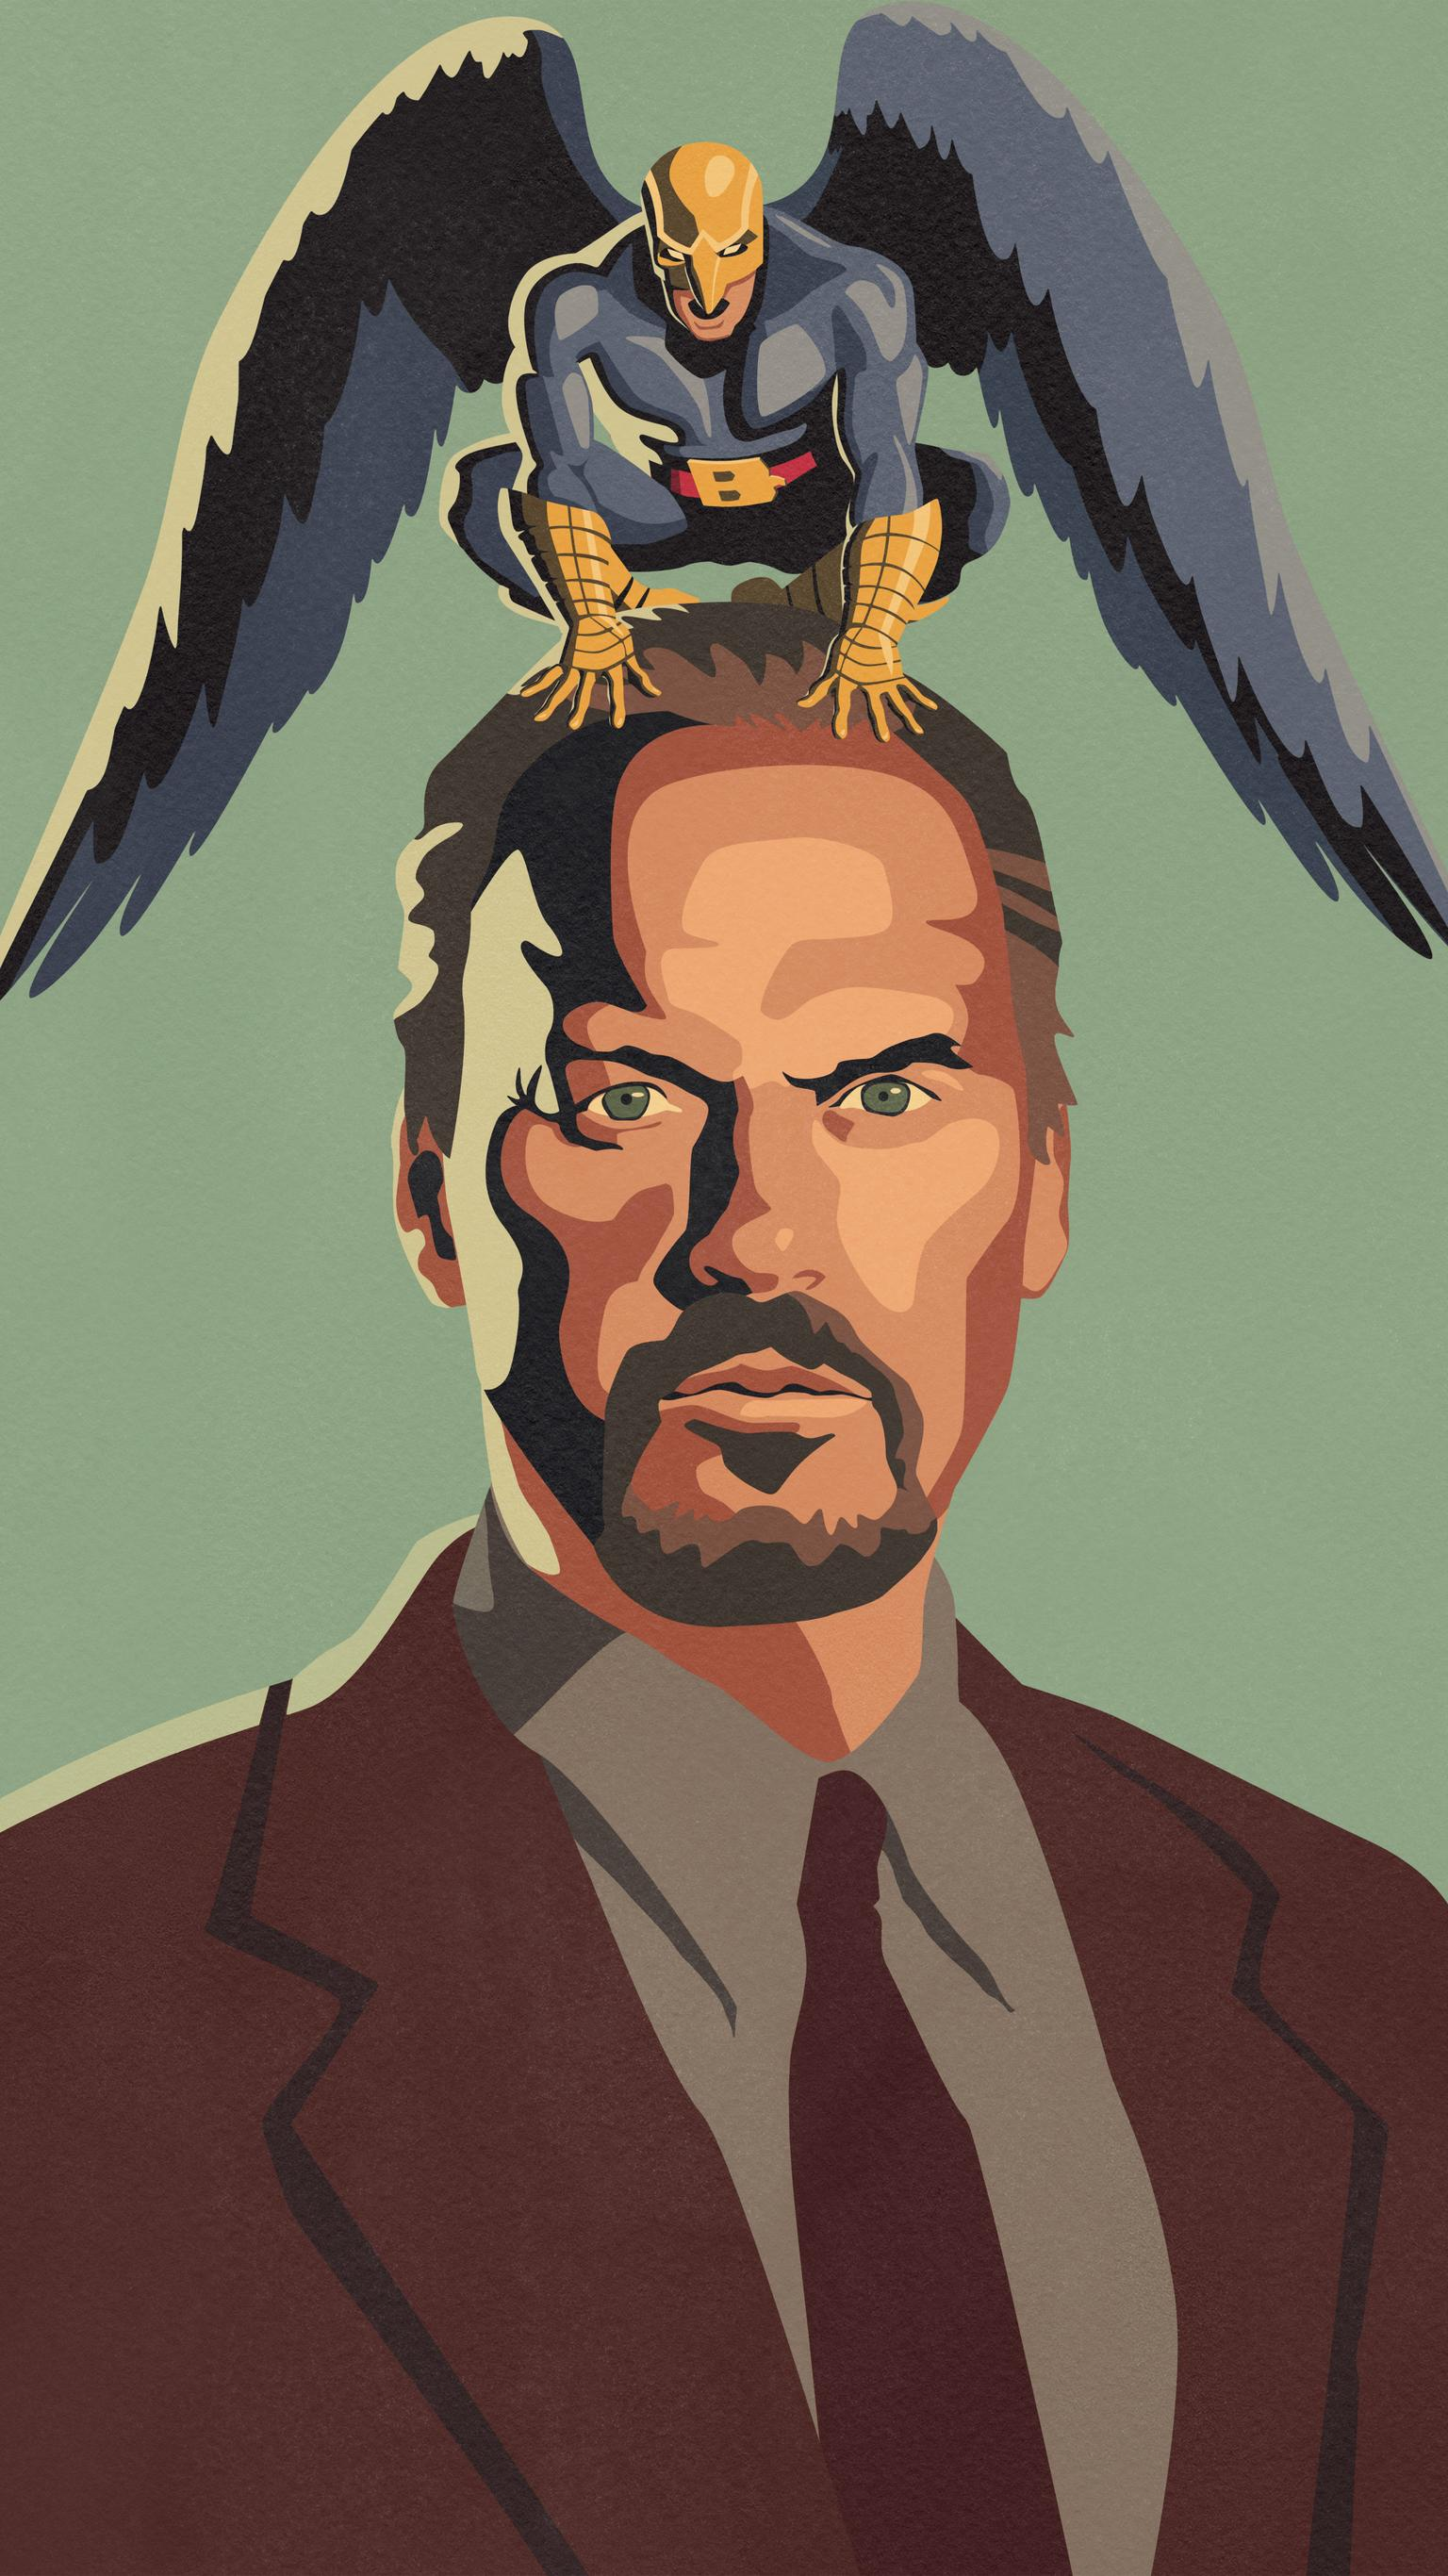 1536x2732 Birdman (2014) Phone Wallpaper | Moviemania